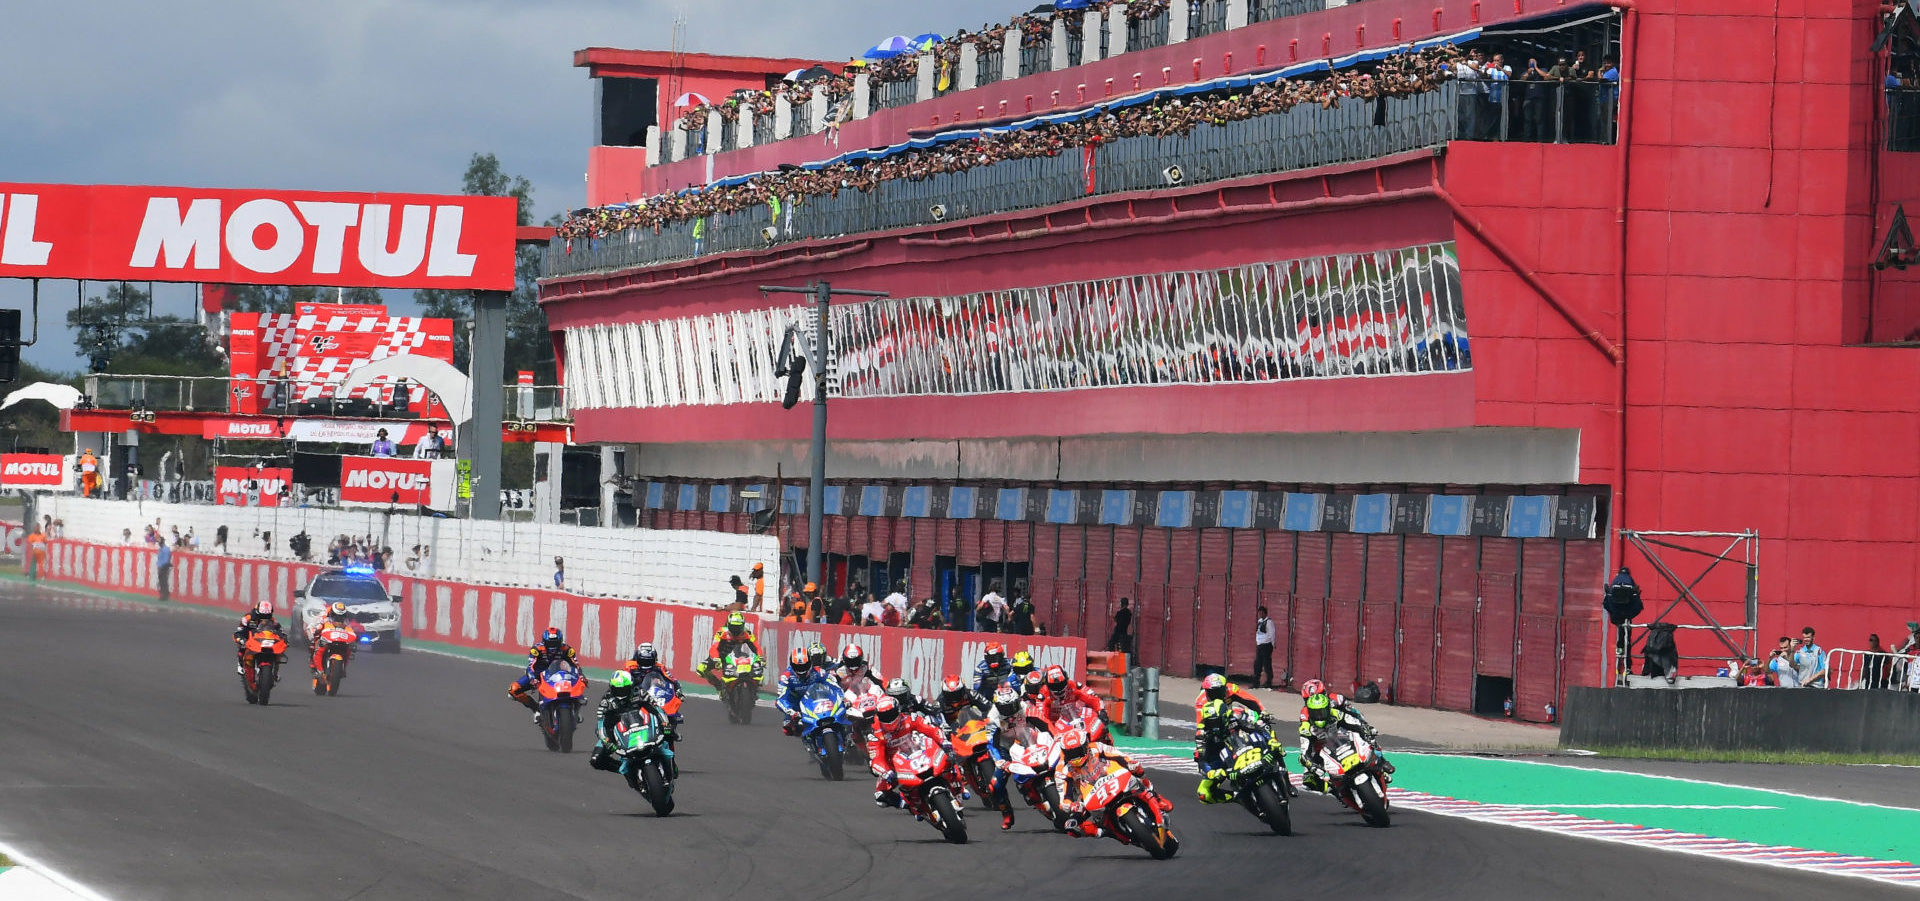 The start of the MotoGP race in Argentina in 2019. Photo courtesy of Michelin.